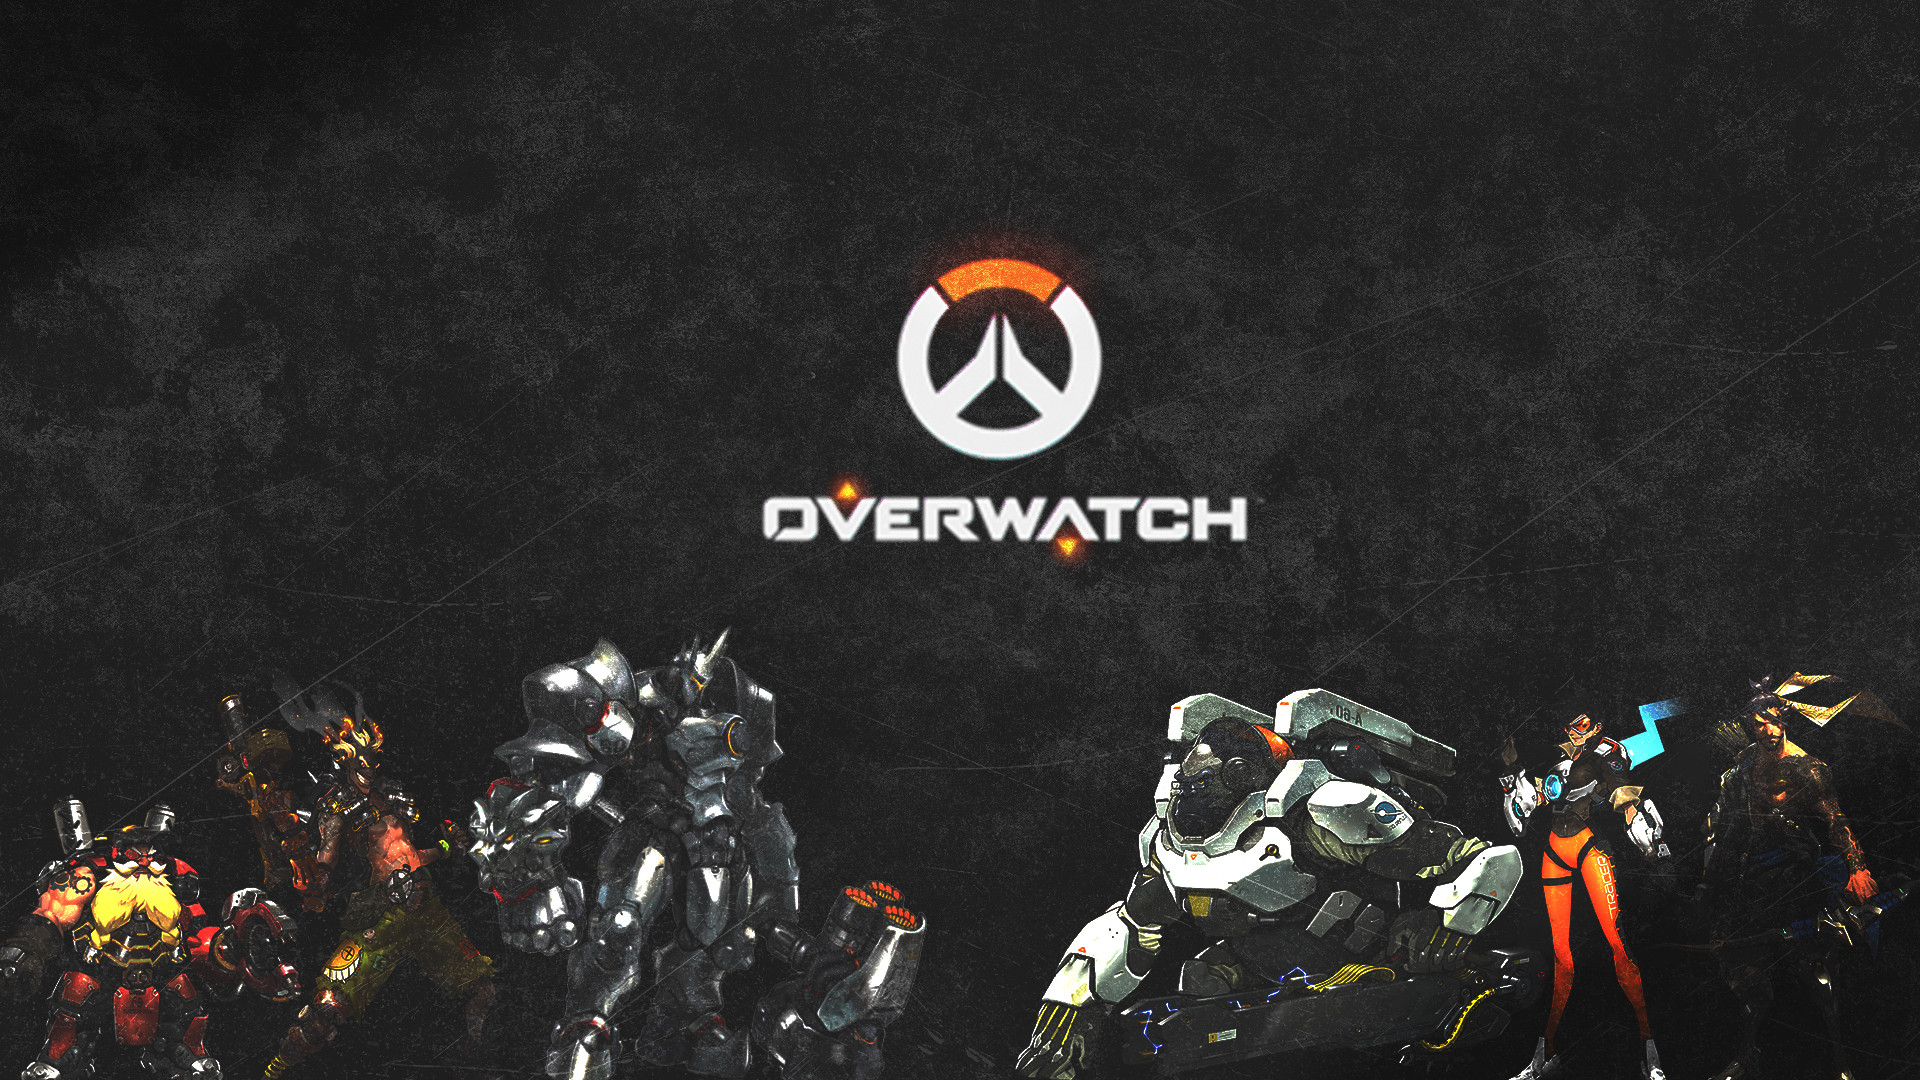 Overwatch Dual Monitor Wallpaper 73 Images